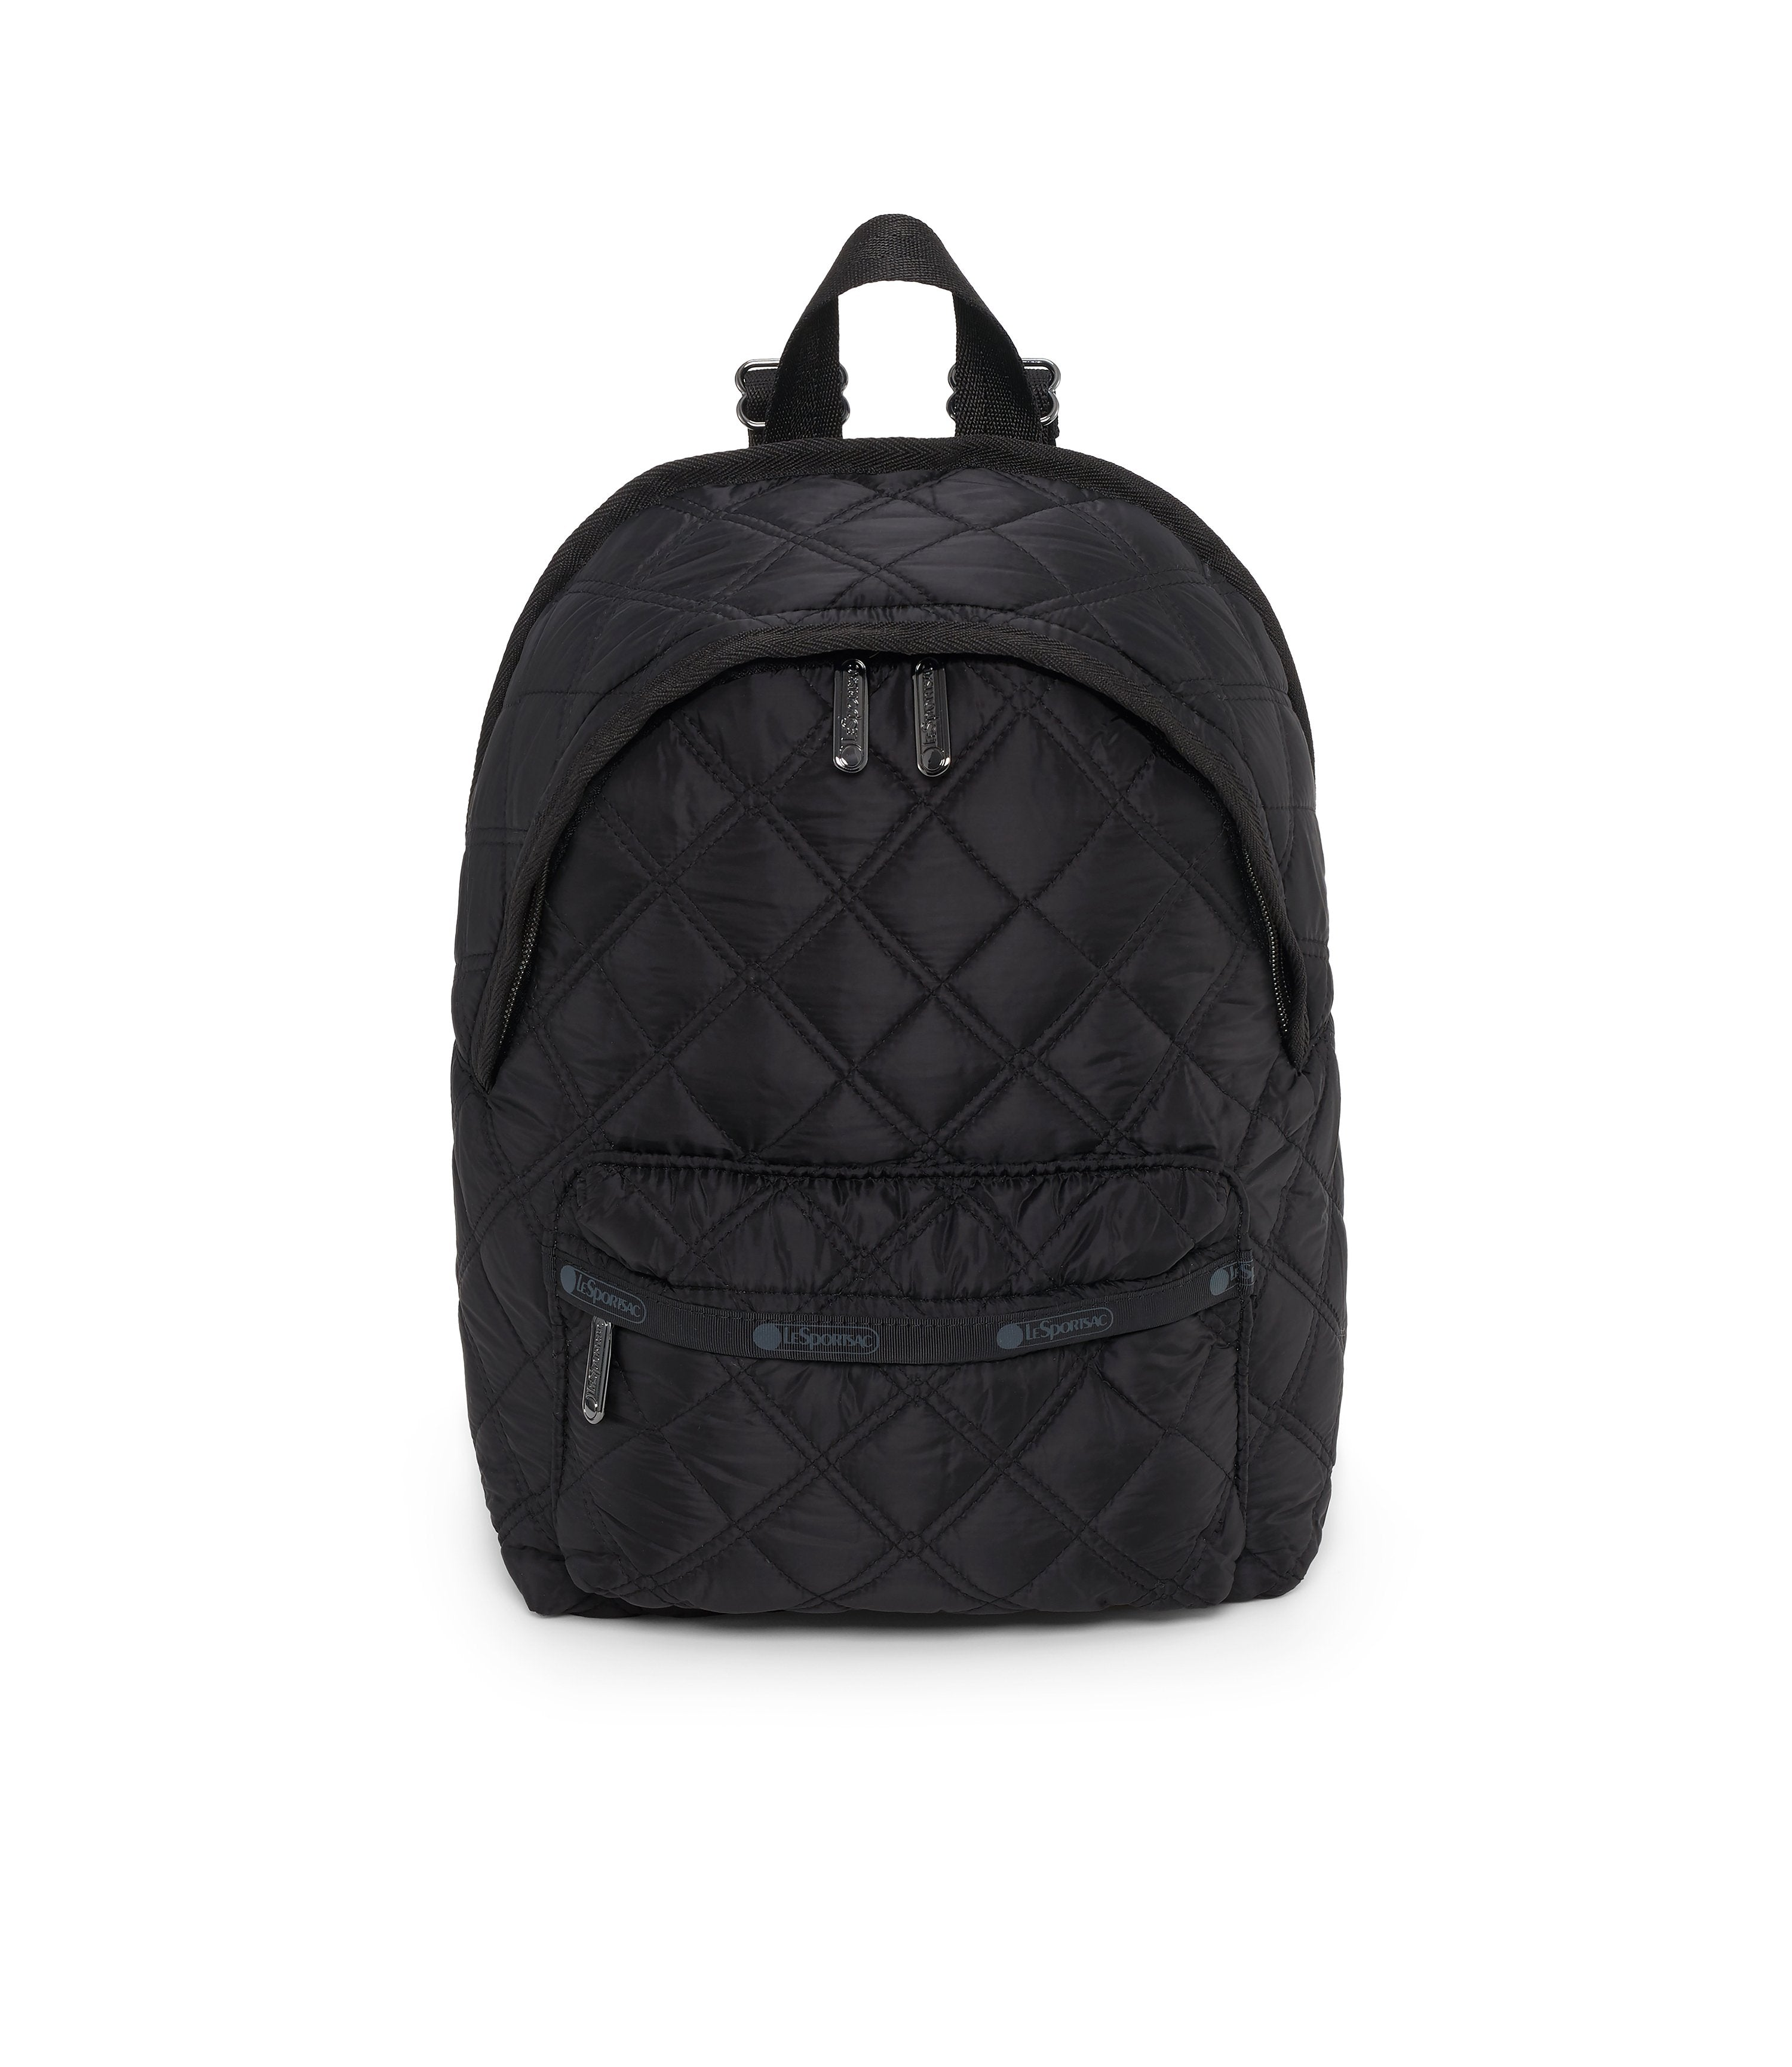 Small Hollis Backpack, Mini Backpack, LeSportsac, Matelasse Black Quilted